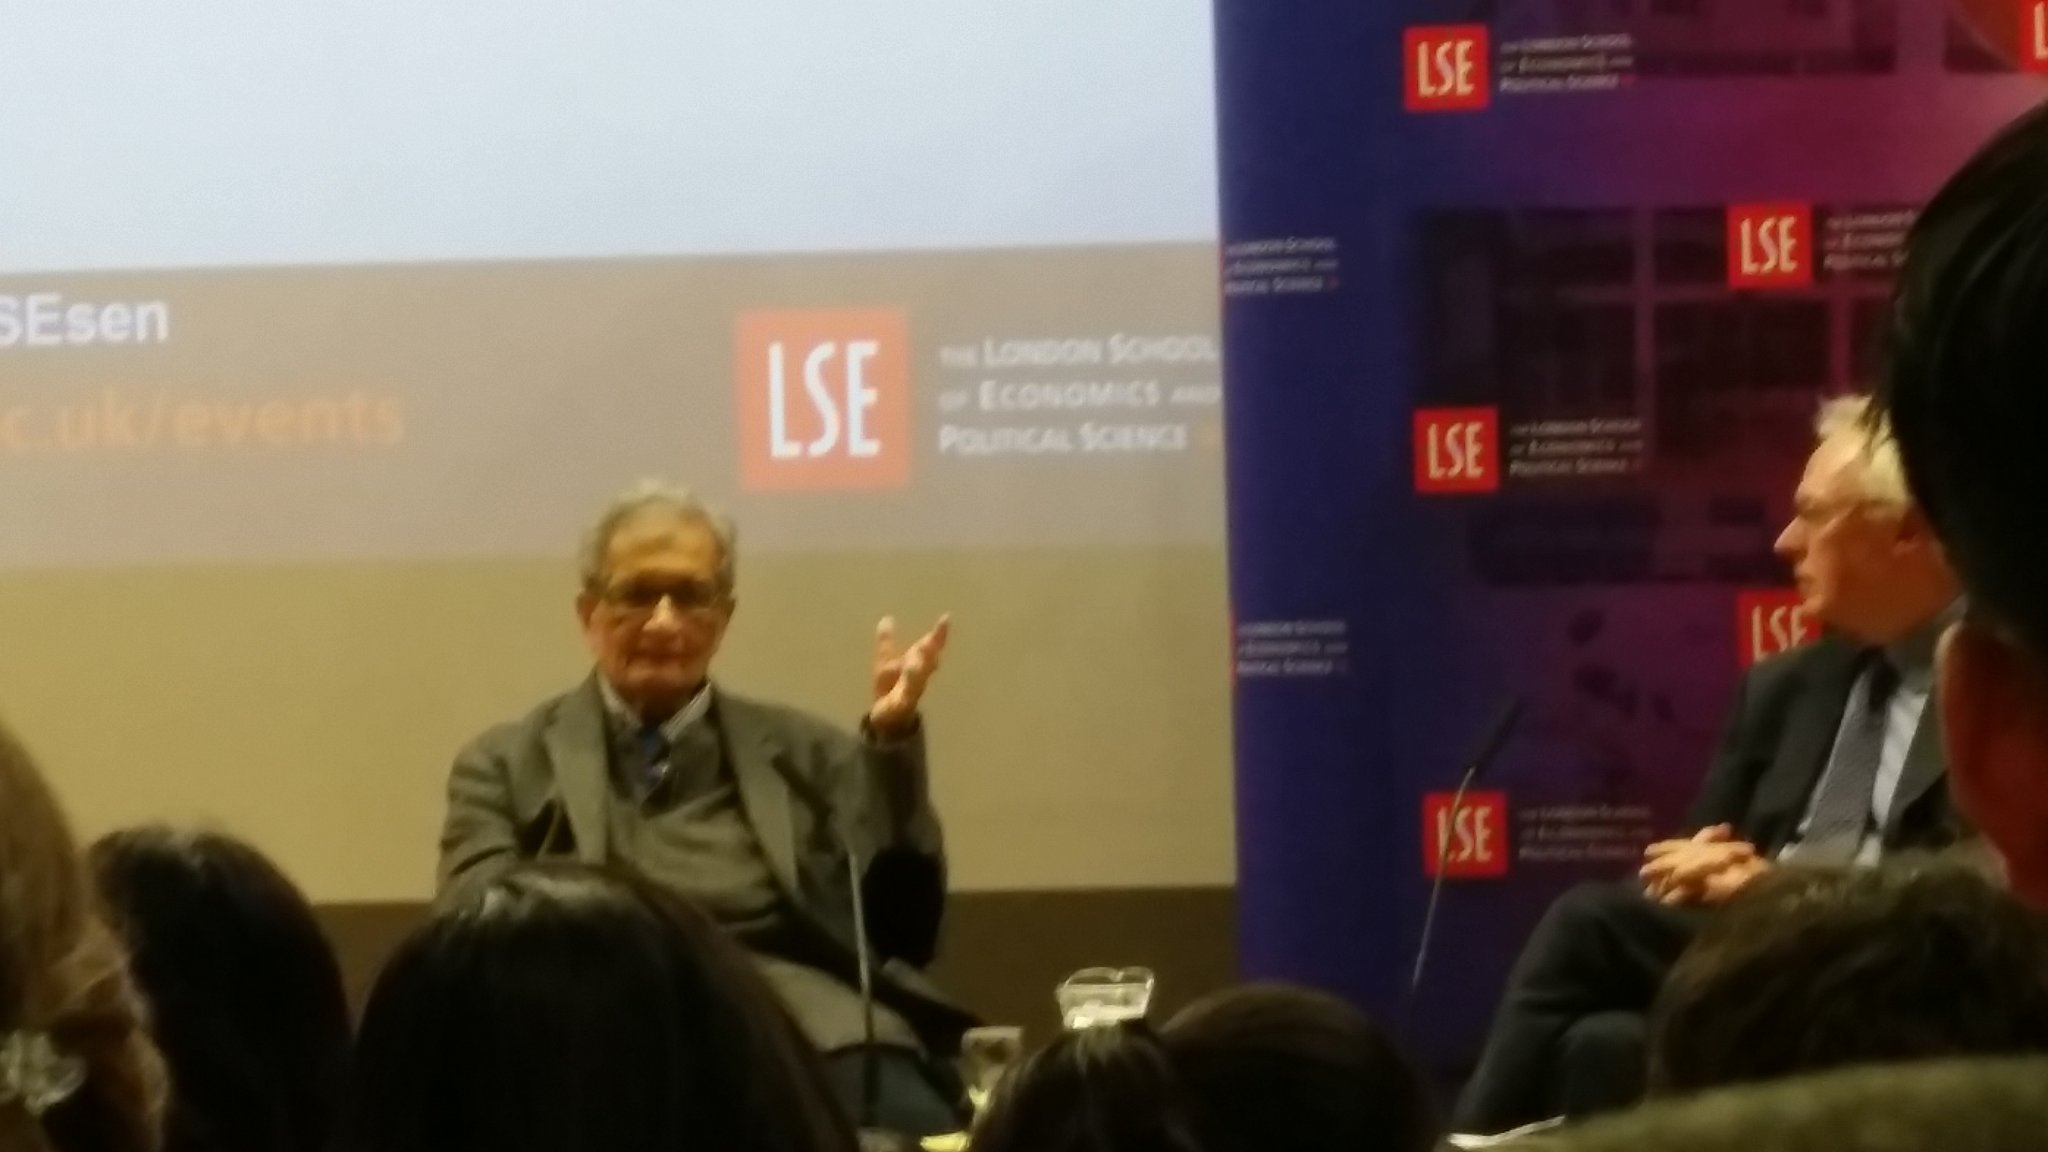 "@AmartyaSen_Econ : ""The thing about low hanging fruit is that they are not as low as they seem"" #LSESen @LSEpublicevents #quoteoftheday https://t.co/TuJFspo1Up"